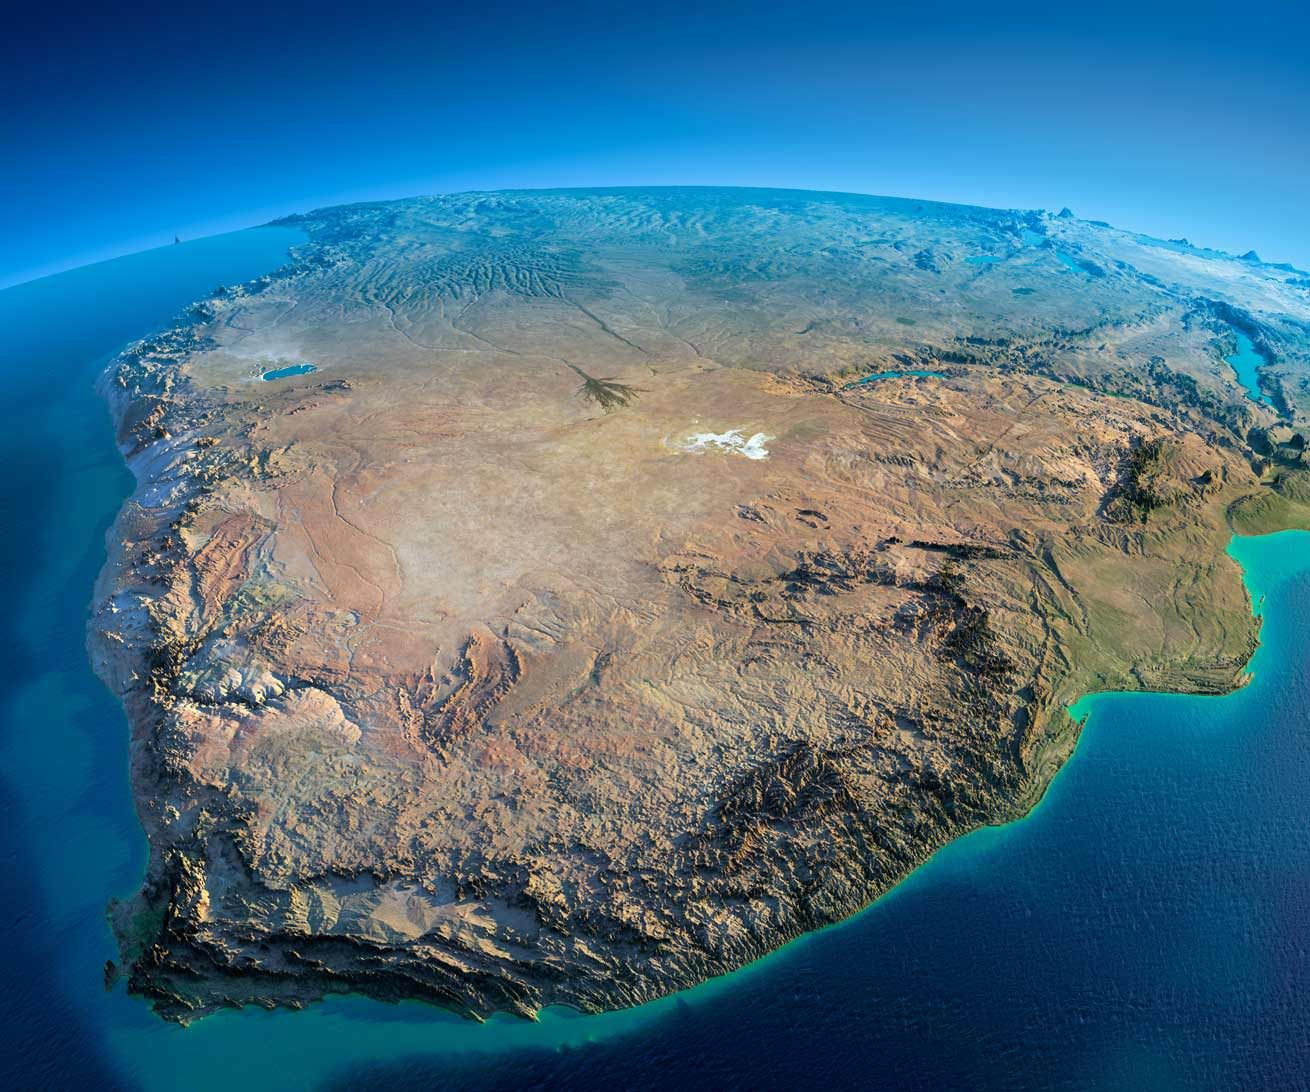 Relief Map Of Southern Africa.Exaggerated Relief Map Of Southern Africa In 2019 Aerial